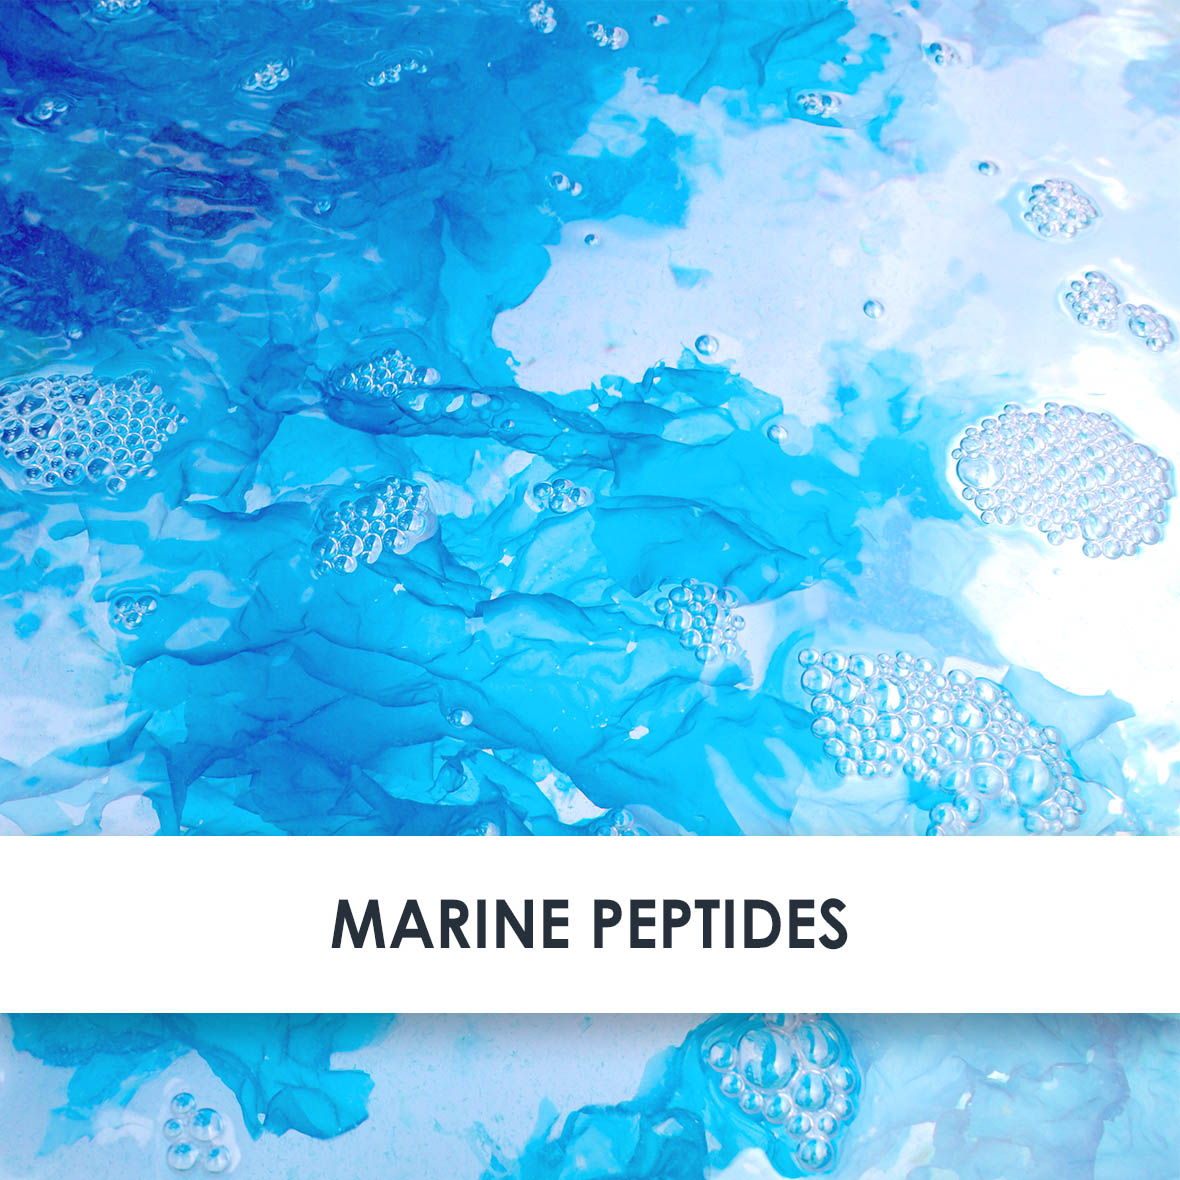 Marine Peptides Skincare Benefits